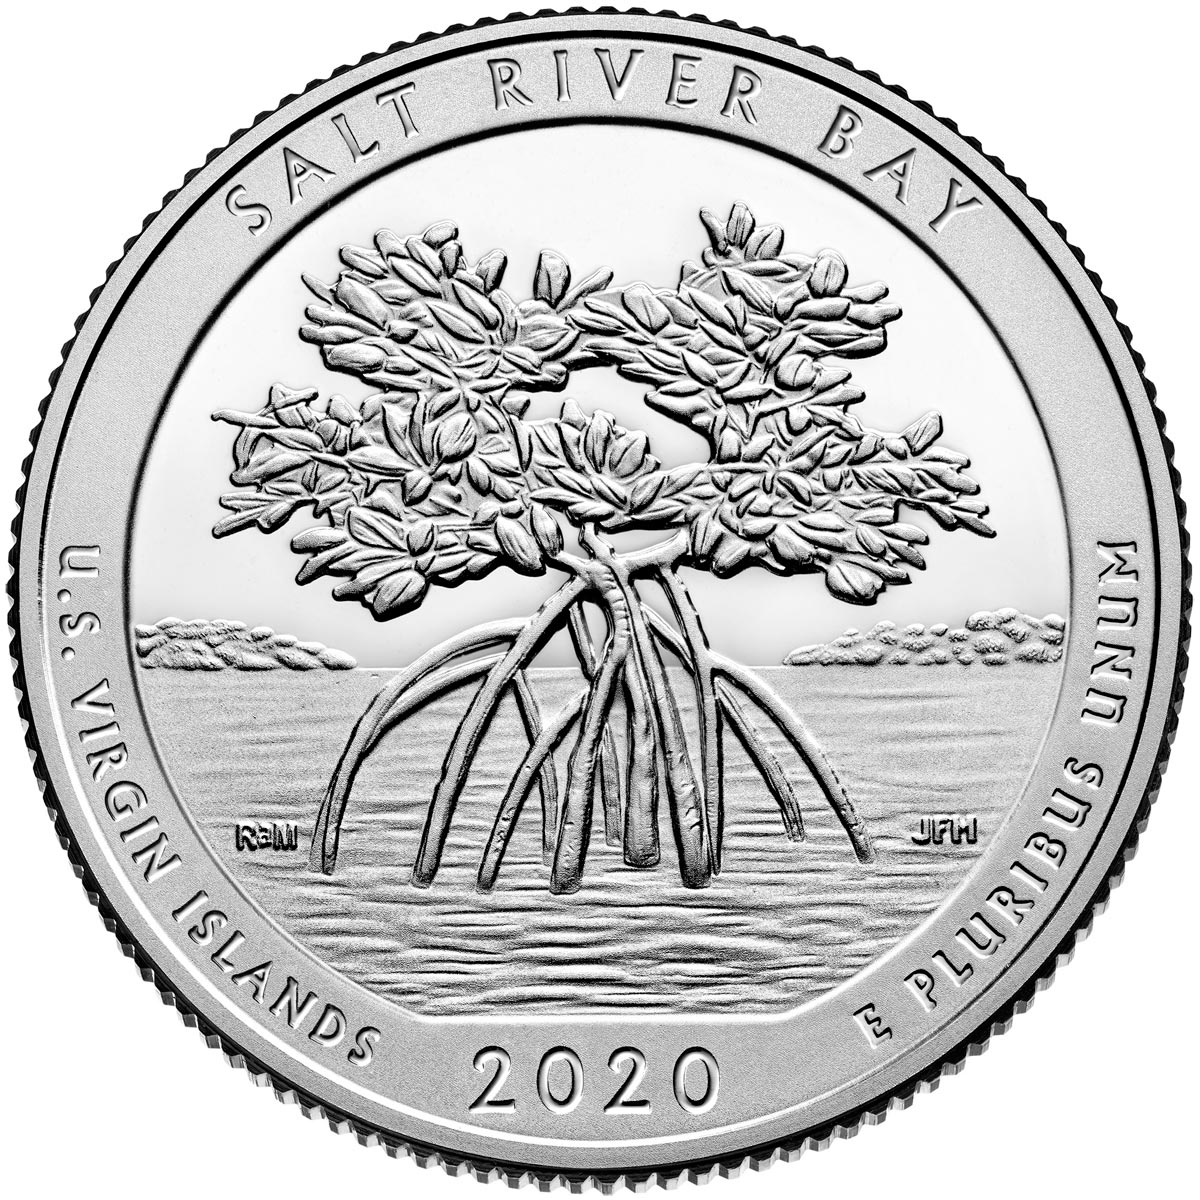 Image of 25 cents coin - Salt River Bay National Historical Park and Ecological Preserve | USA 2020.  The Copper–Nickel (CuNi) coin is of Proof, BU, UNC quality.